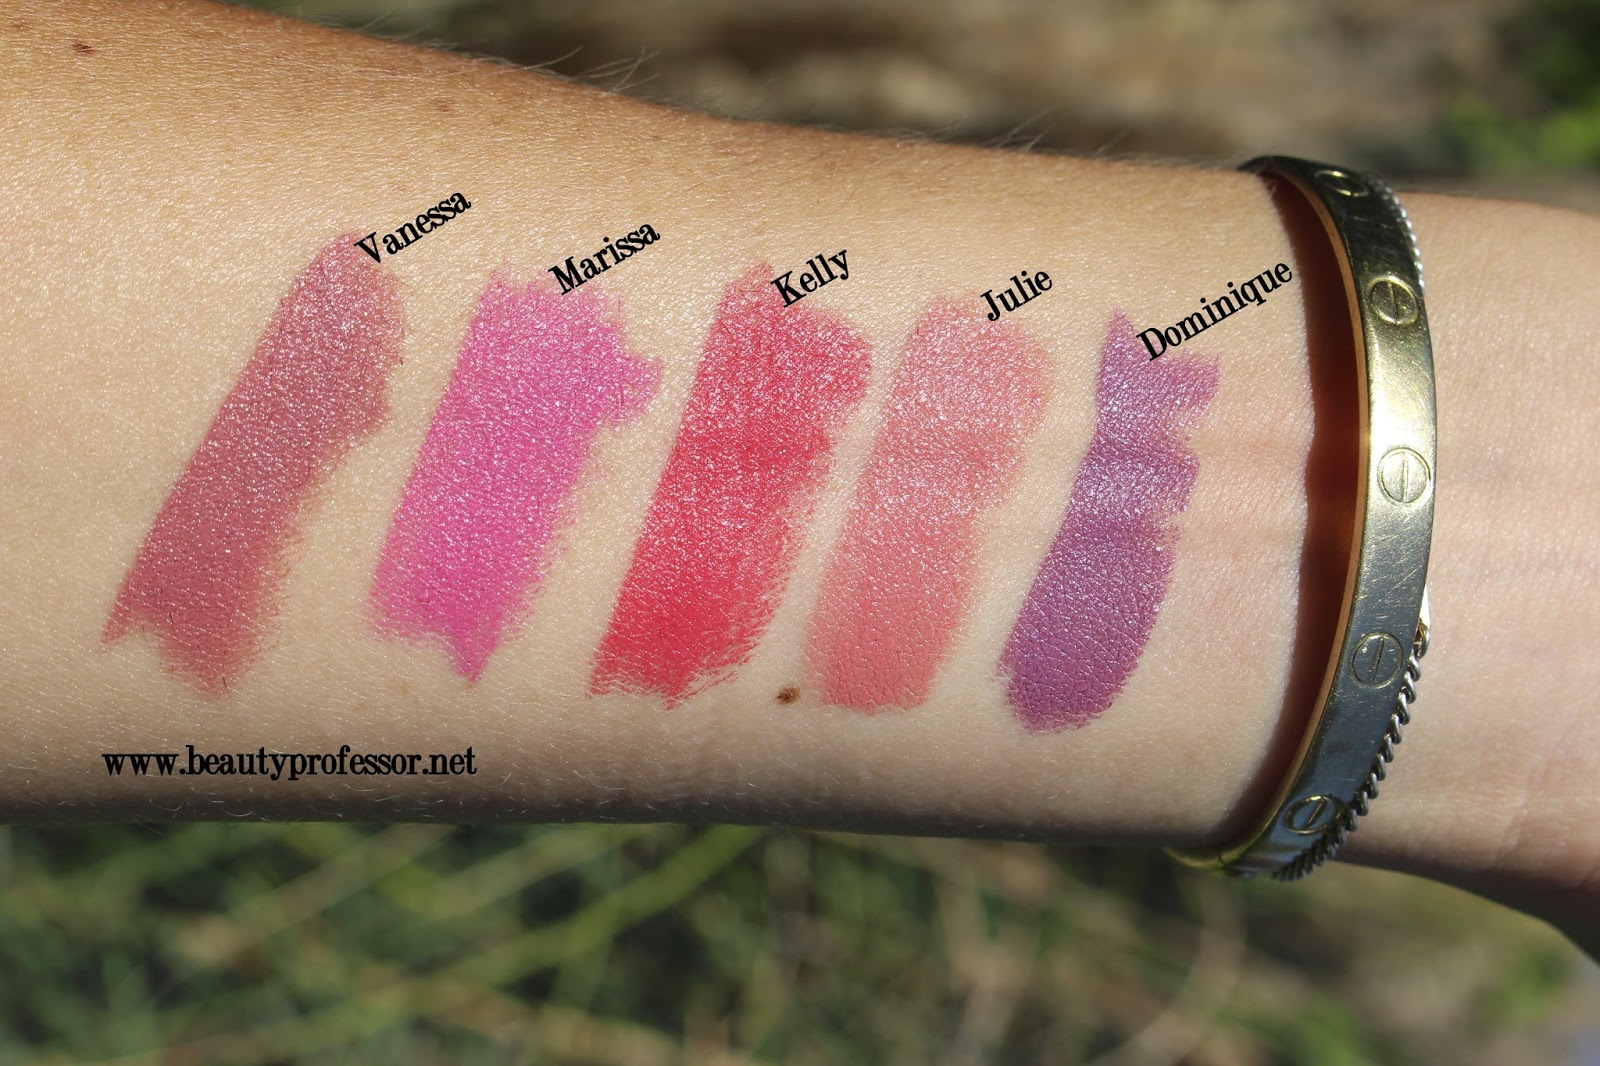 Bien connu Beauty Professor: NARS Audacious LipstickSwatches of My Selections! LB11